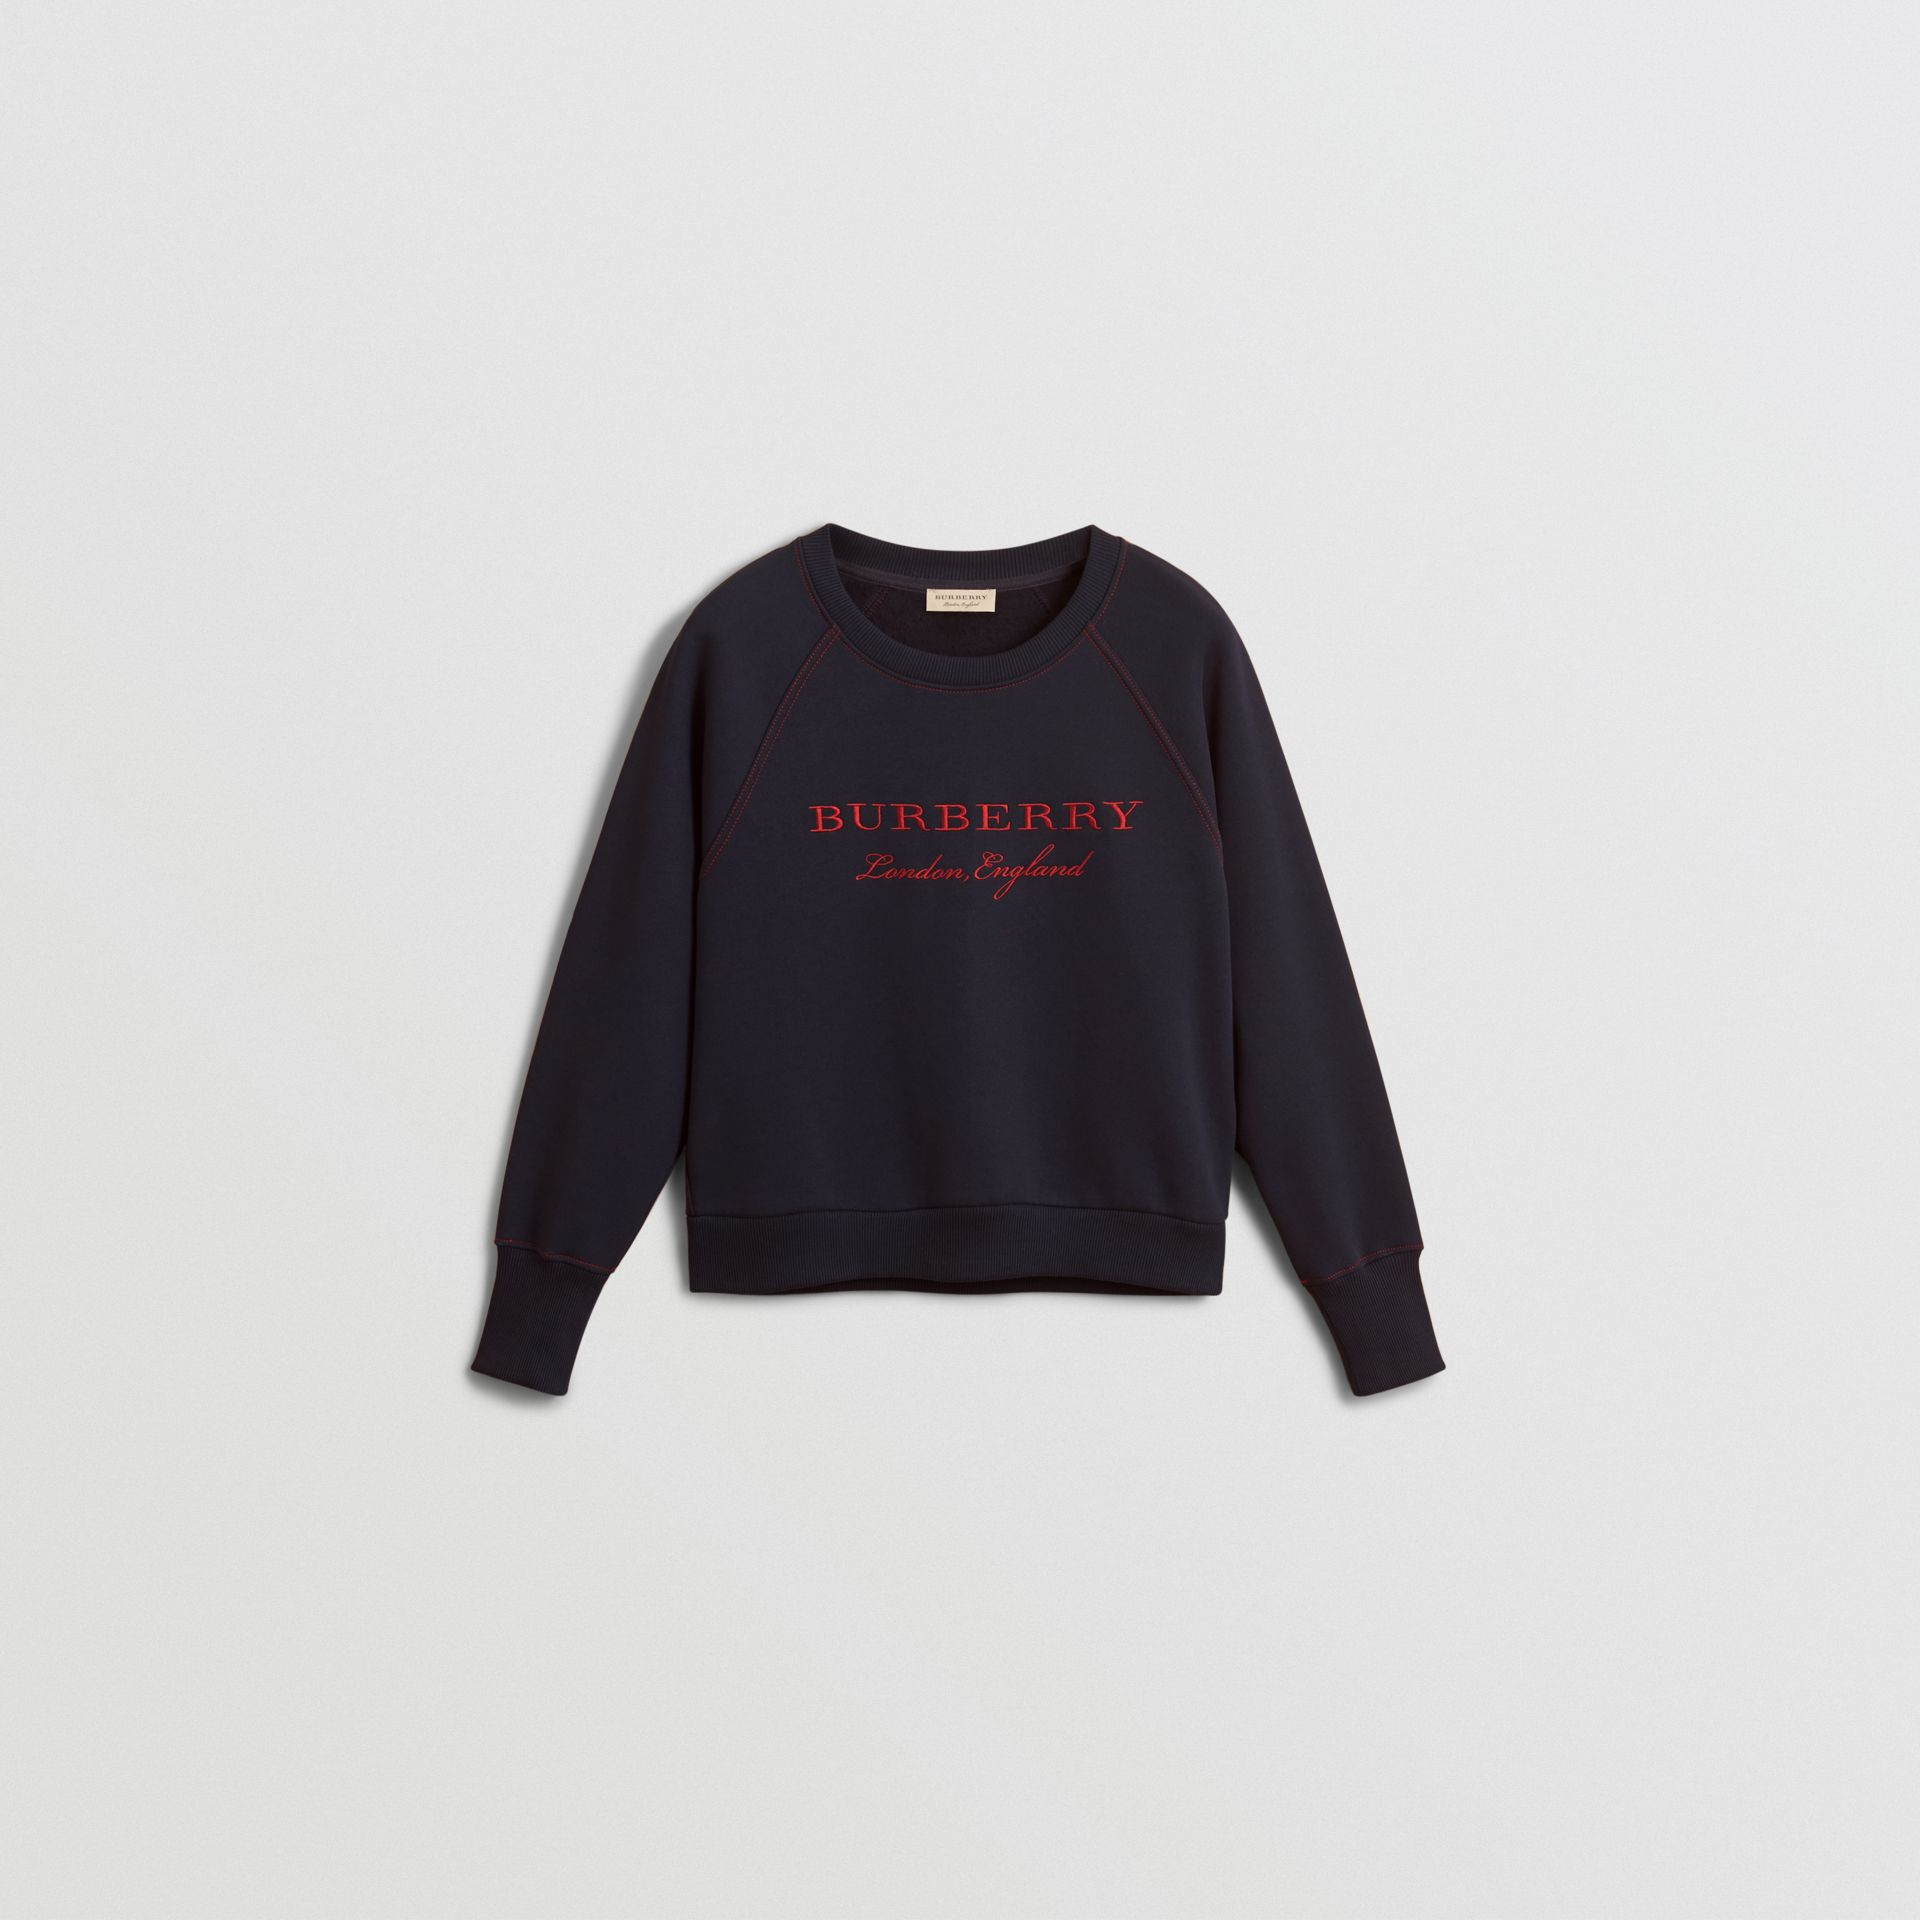 Embroidered Cotton Blend Jersey Sweatshirt in Navy - Women | Burberry United Kingdom - gallery image 3